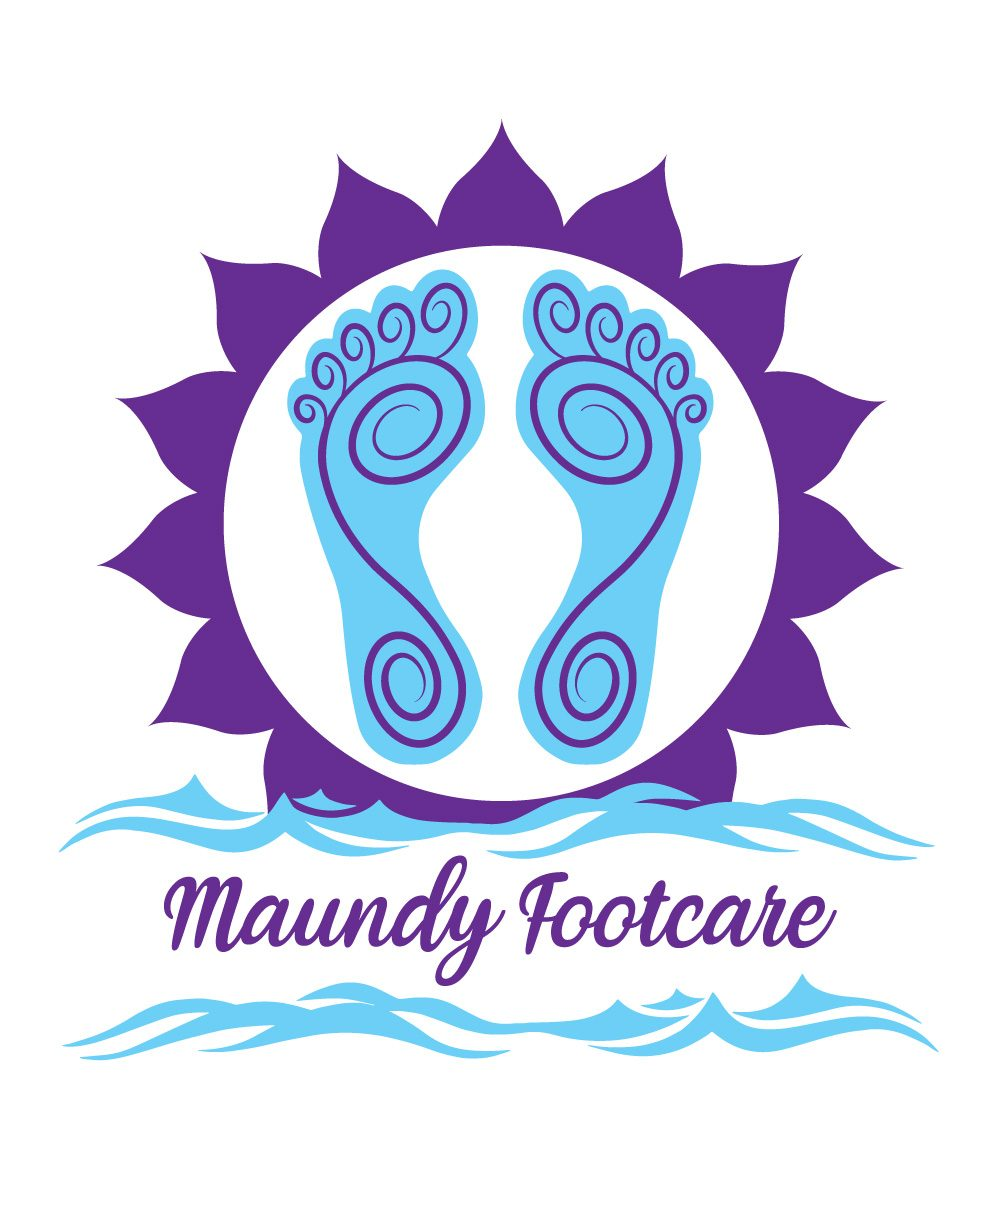 Maundy Footcare